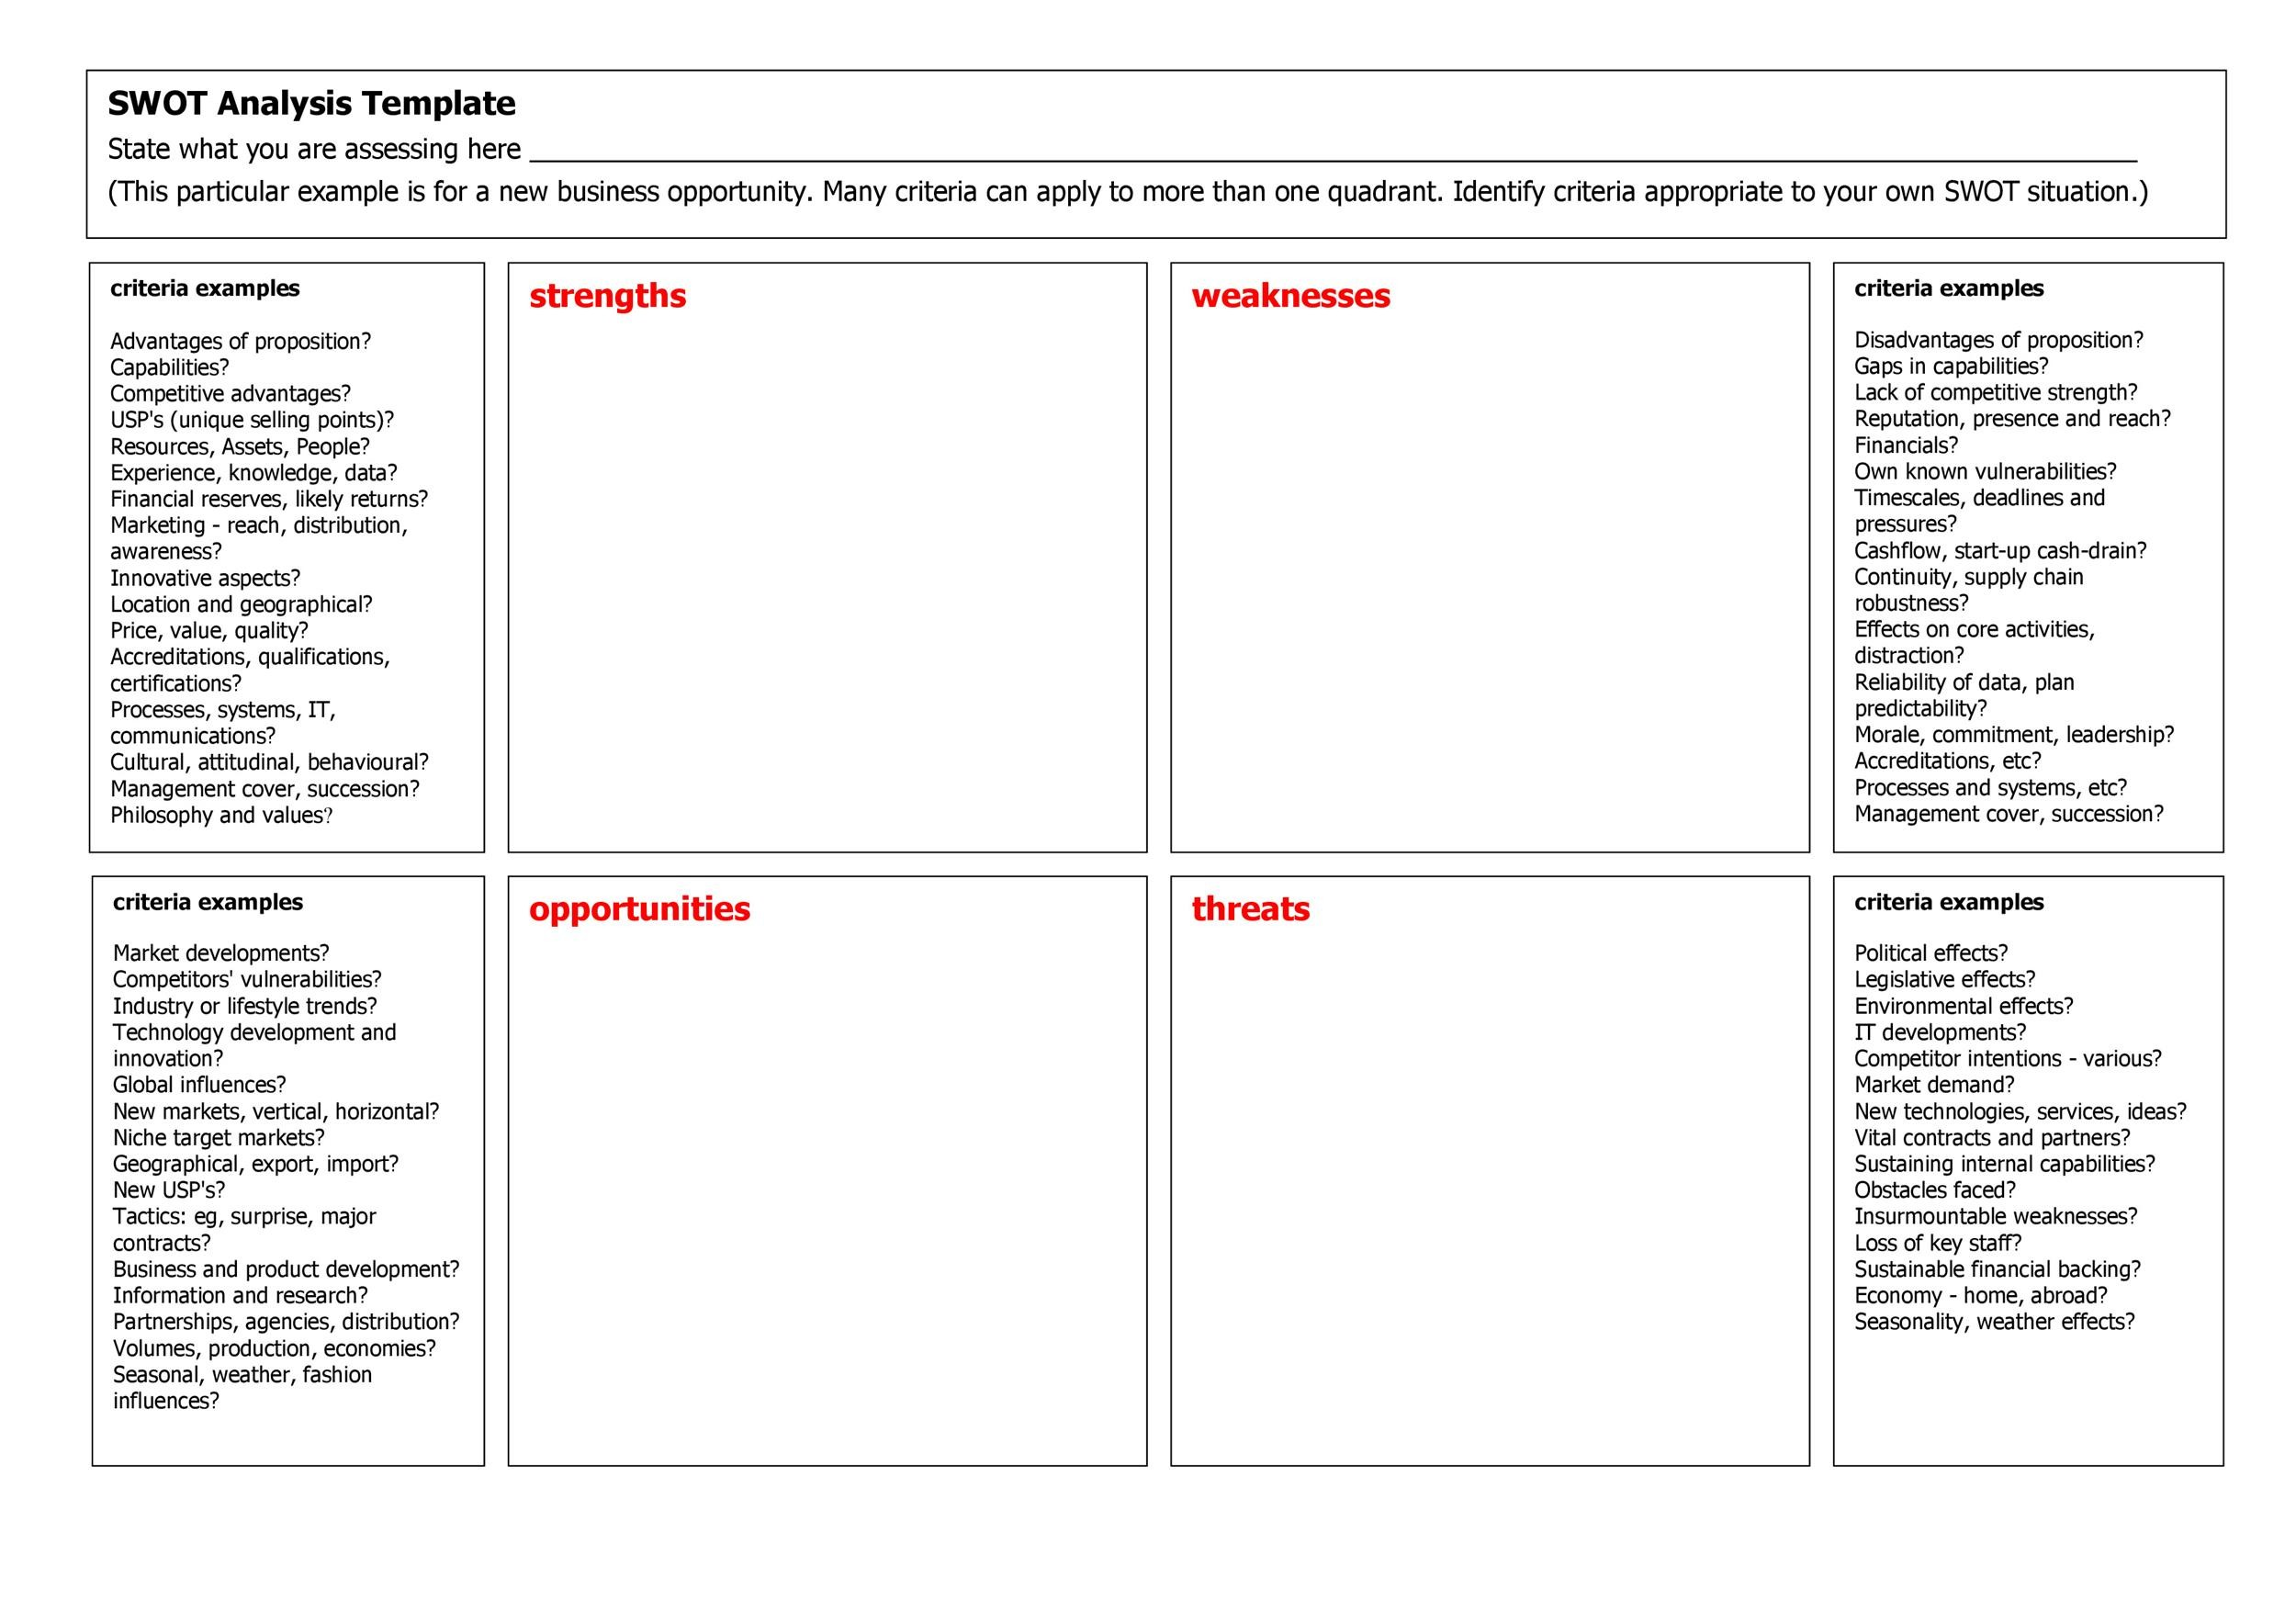 40 powerful swot analysis templates examples free swot analysis template 16 accmission Gallery